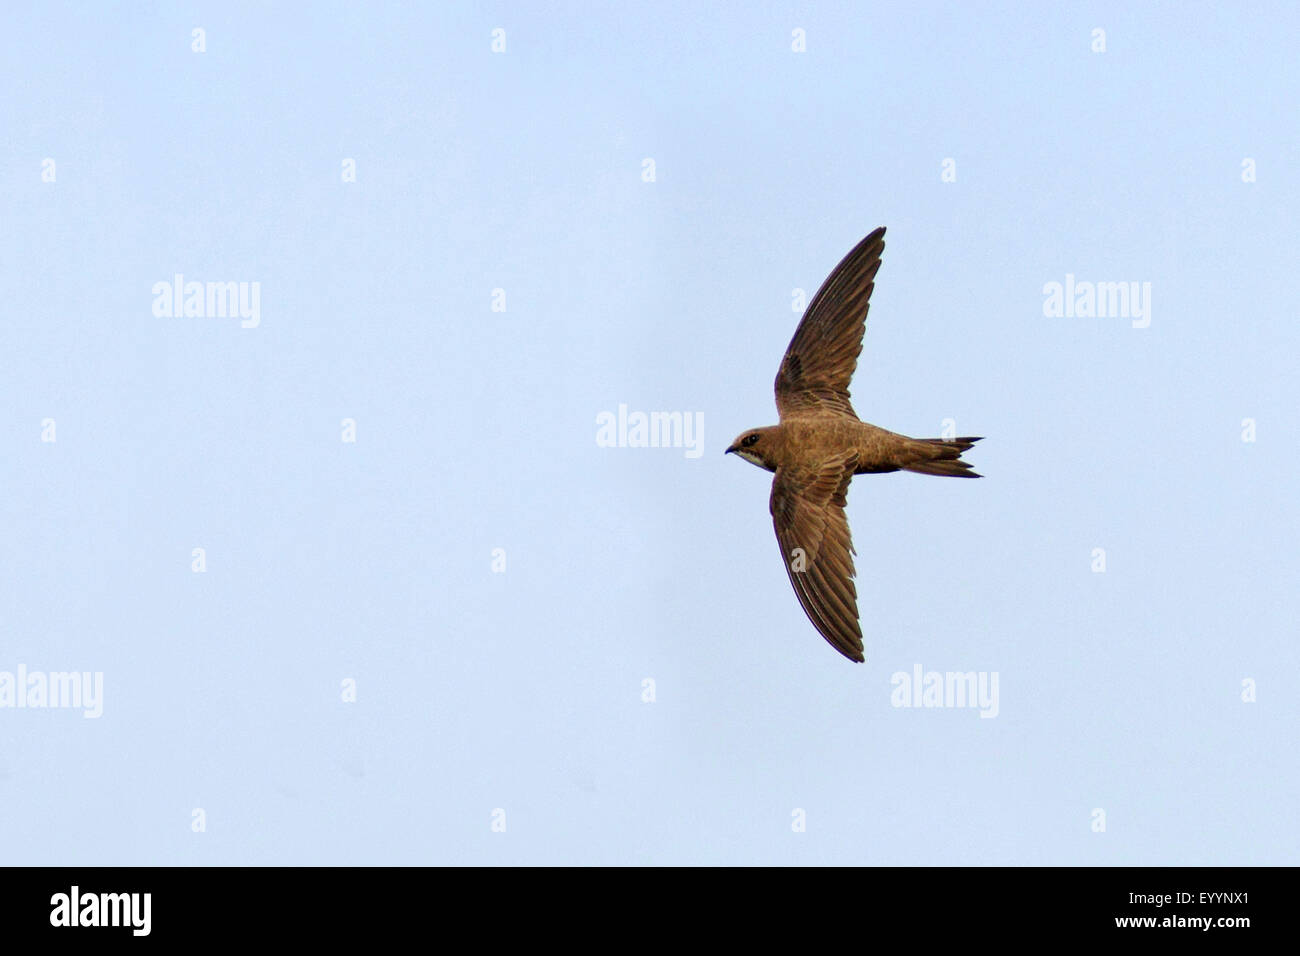 alpine swift (Apus melba, Tachymarptis melba), flying, Bulgaria, Kaliakra Stock Photo